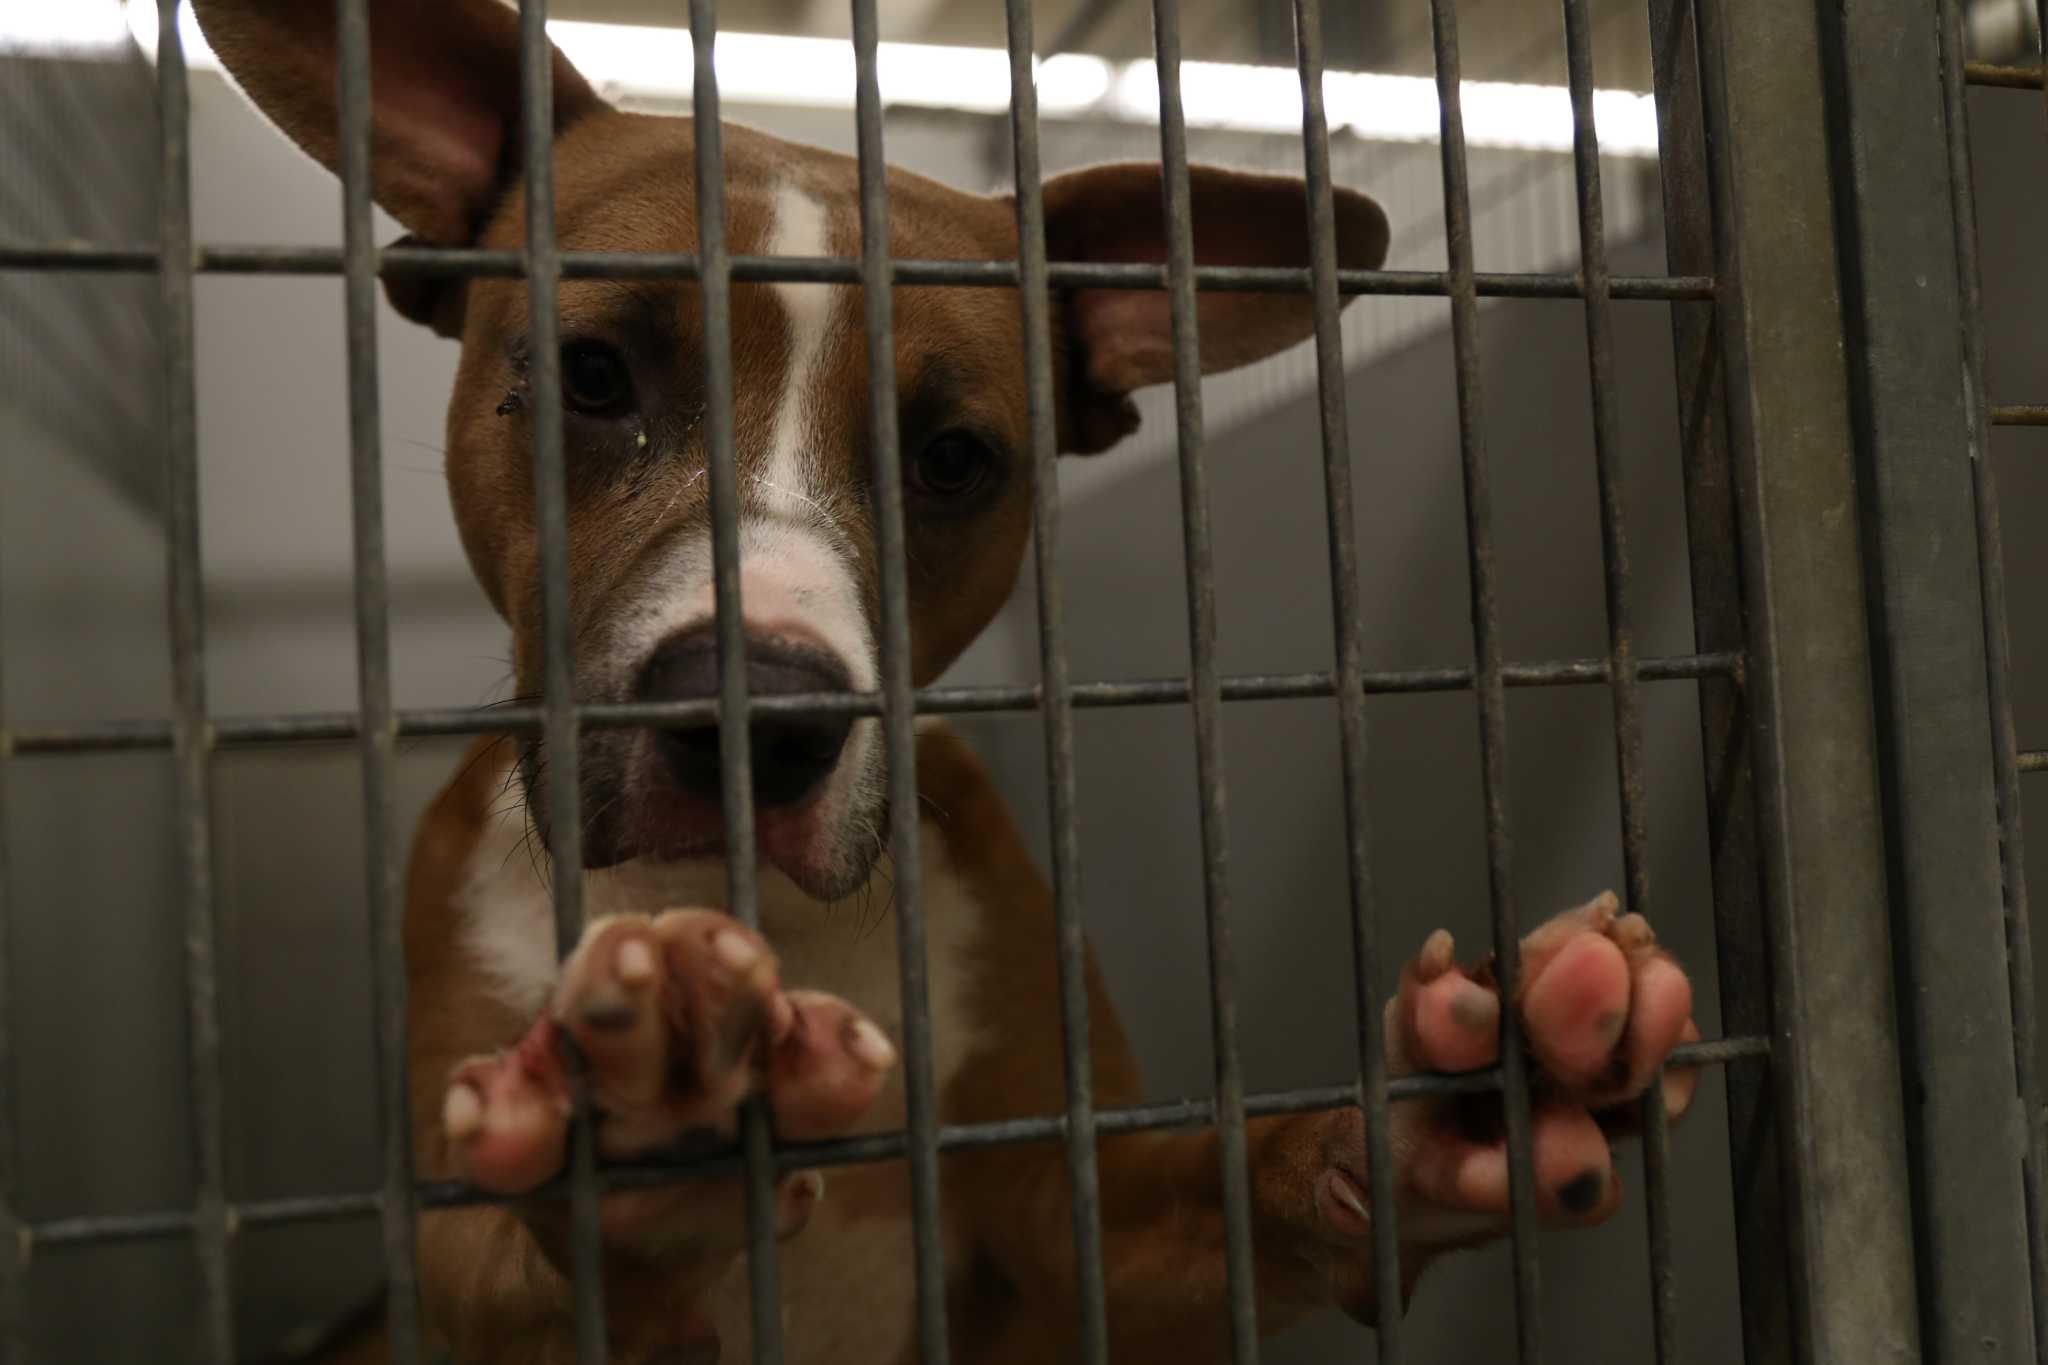 Montgomery County Animal Shelter employees sold animals for